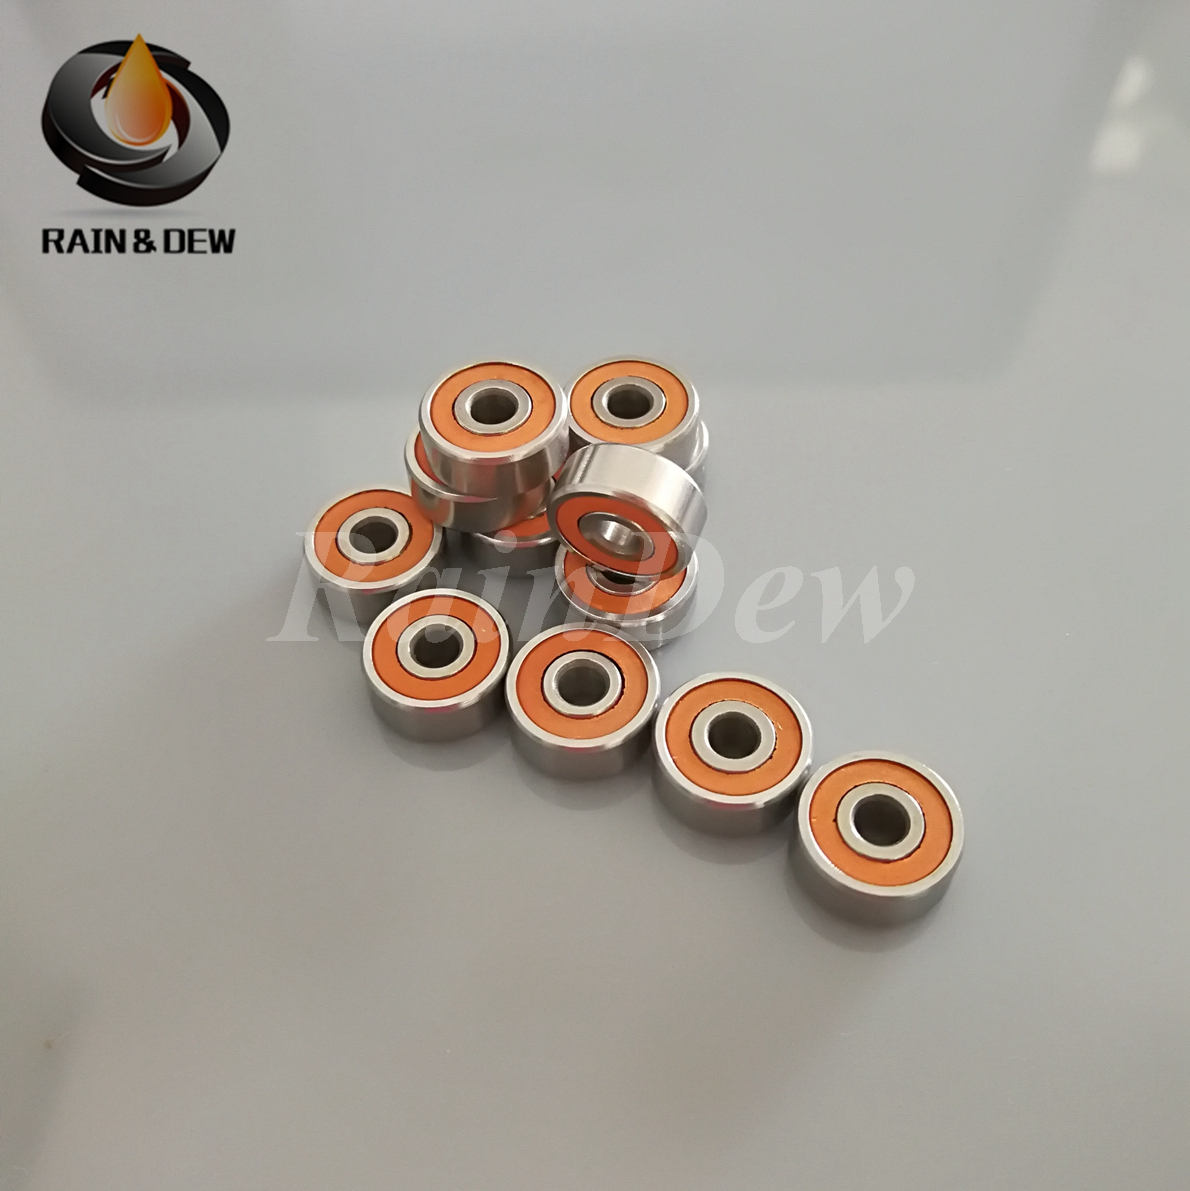 Free Shipping 10PCS SMR103 2OS CB ABEC7 3X10X4mm Stainless Steel Hybrid Ceramic Bearing SMR103-2RS SMR103C 2OS free shipping 1pc s693 2os 3x8x4 cb abec7 hybrid ceramic stainless lube dry fishing reel bearing smr693c 2os a7 ld s693 2rs